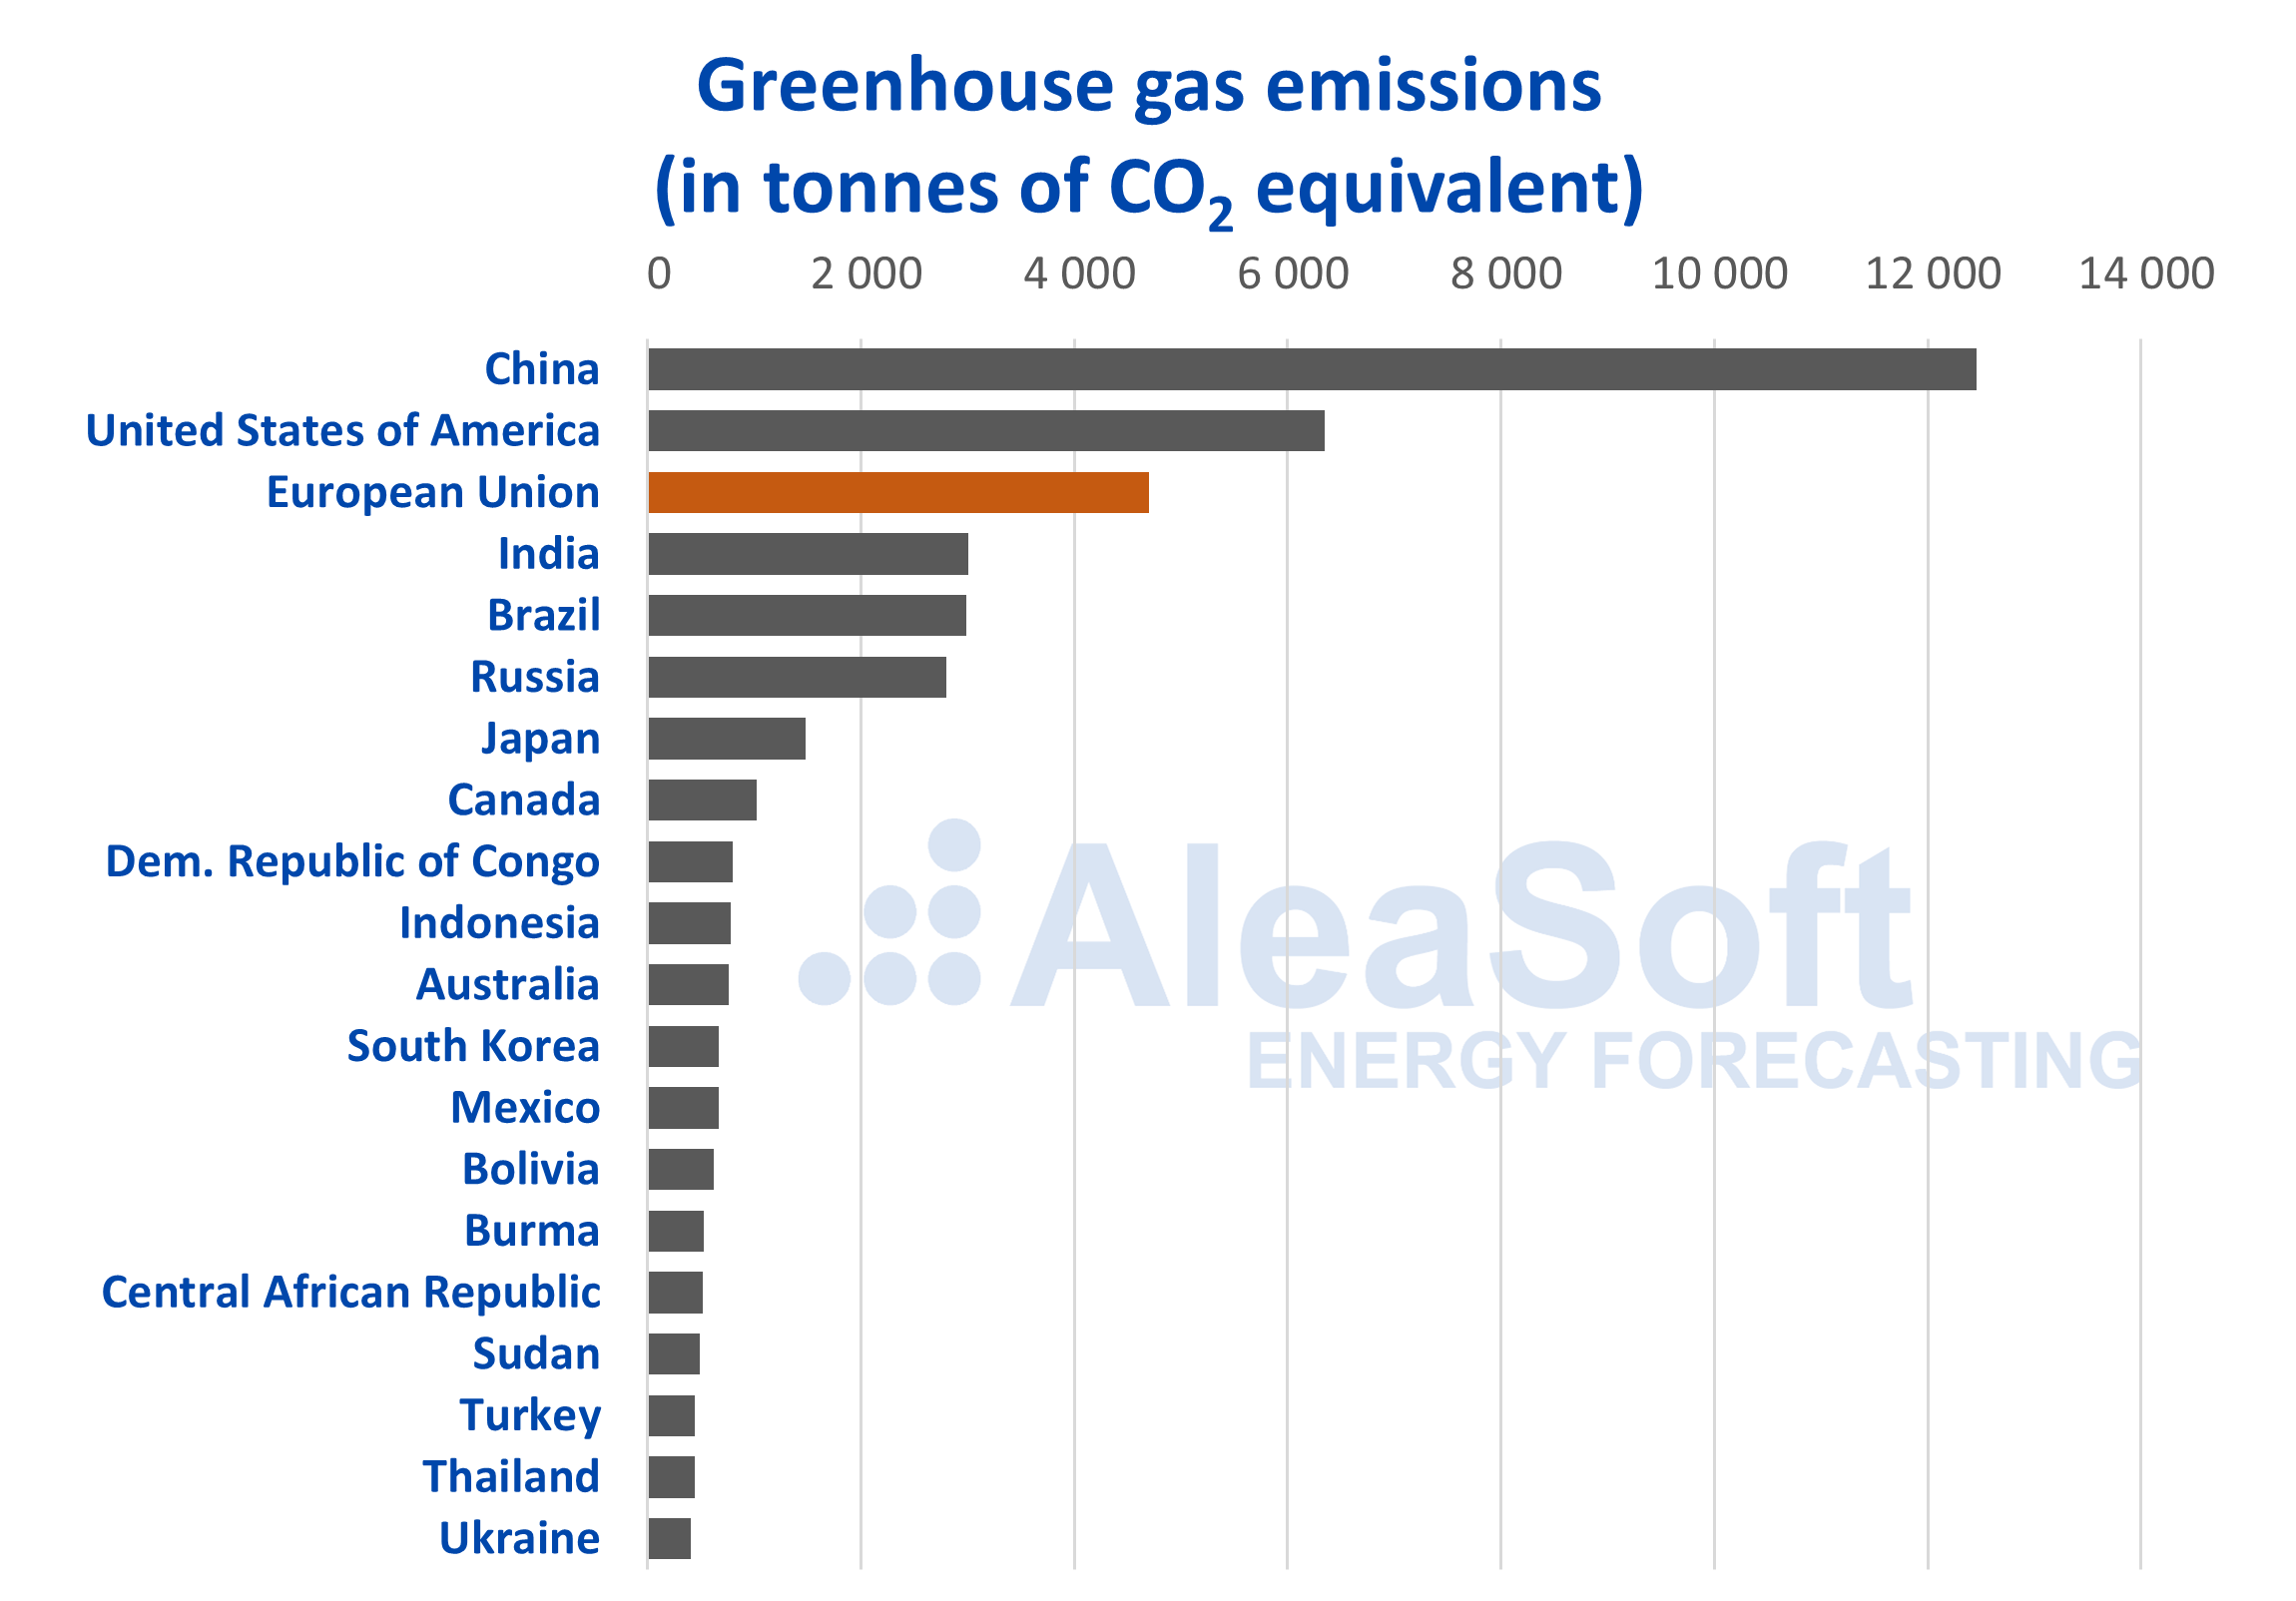 AleaSoft - CO2 geenhouse emissions Europe China USA